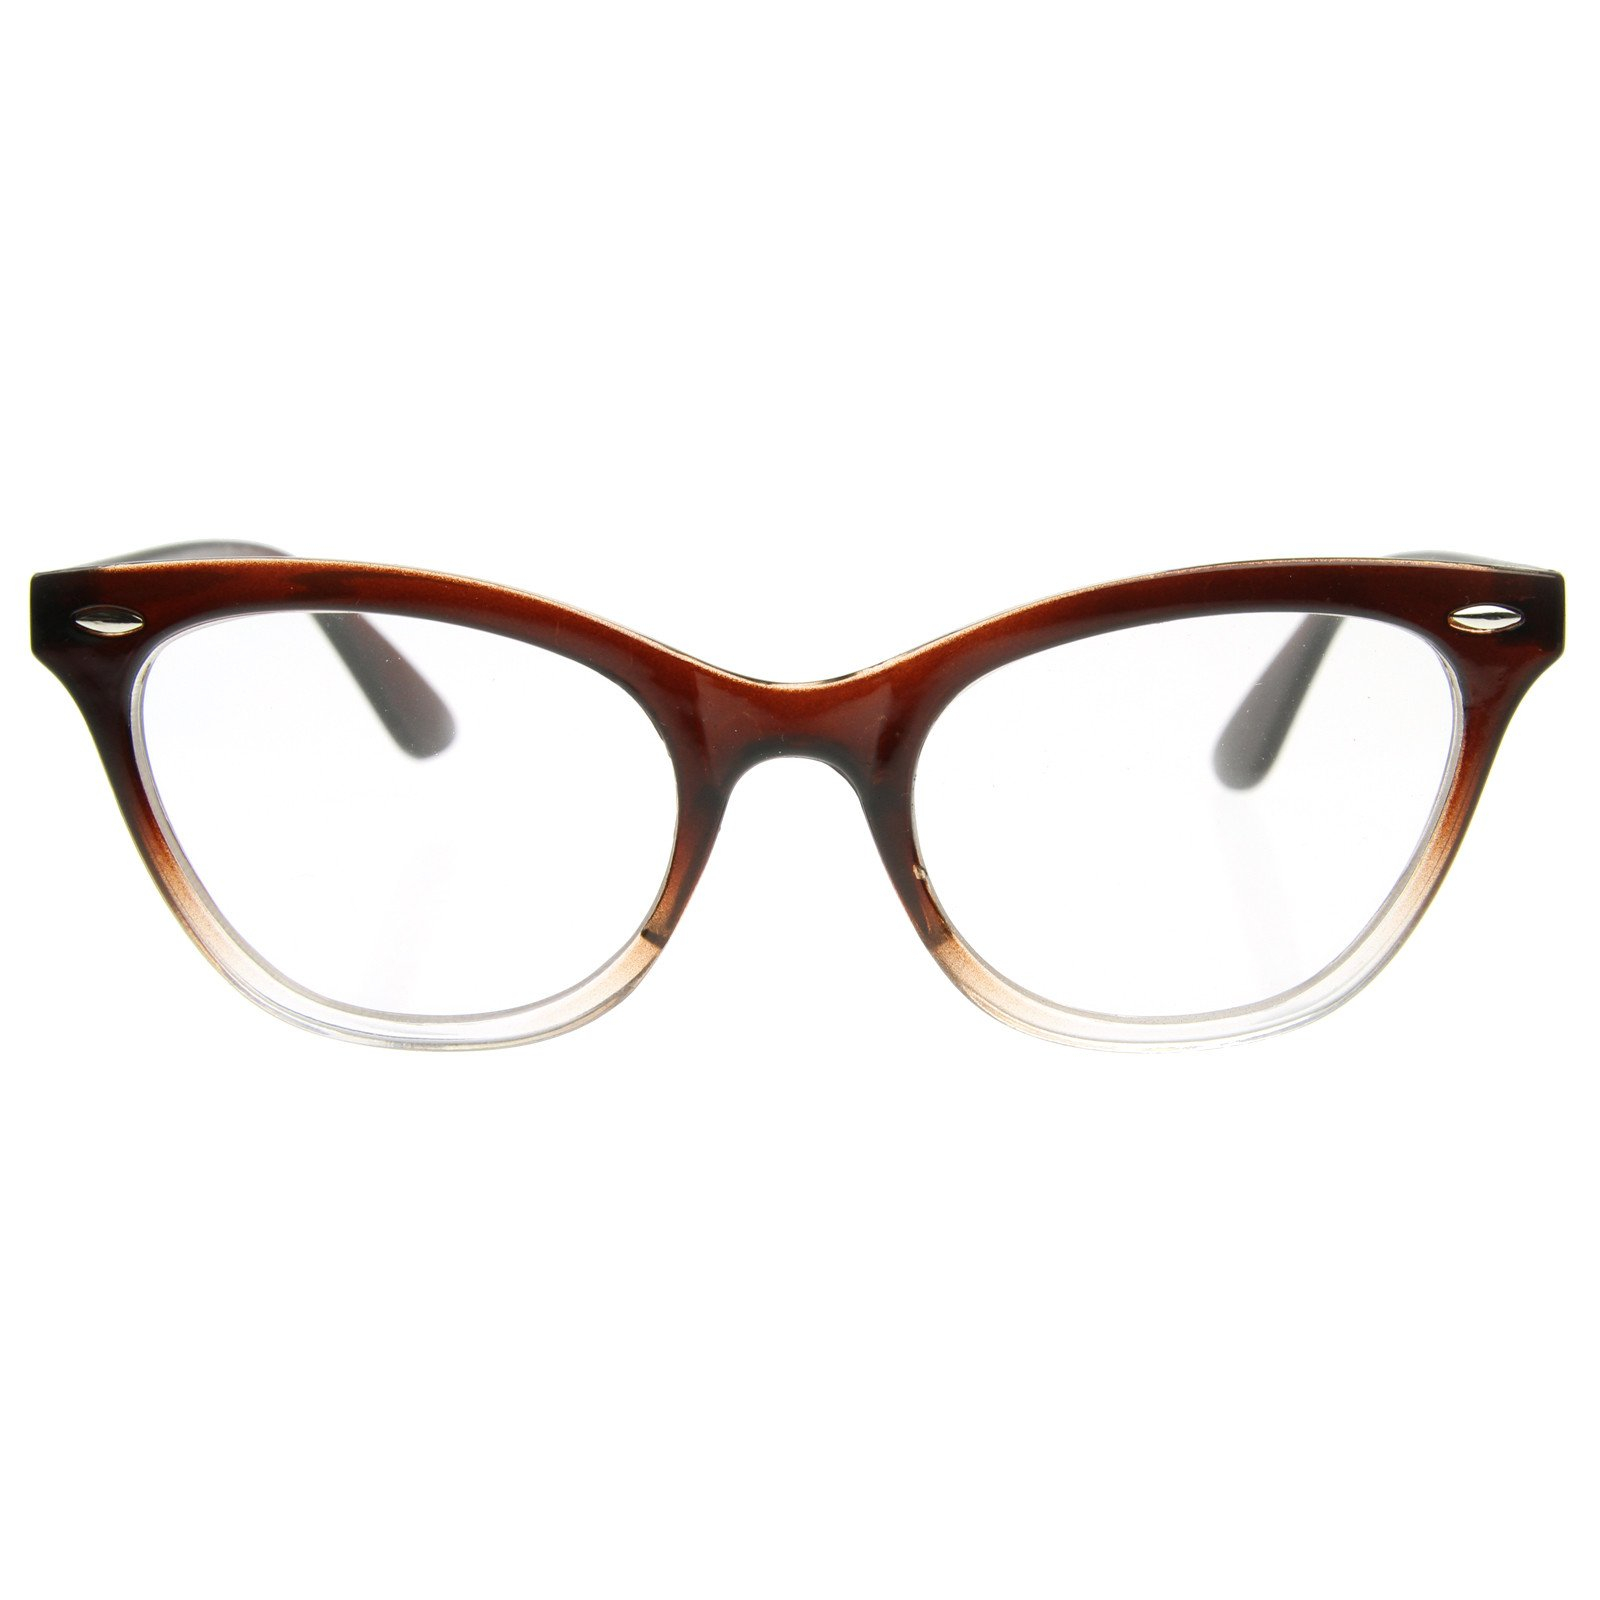 Image of Retro 1950's RX Cat Eye Clear Lens Glasses 8532